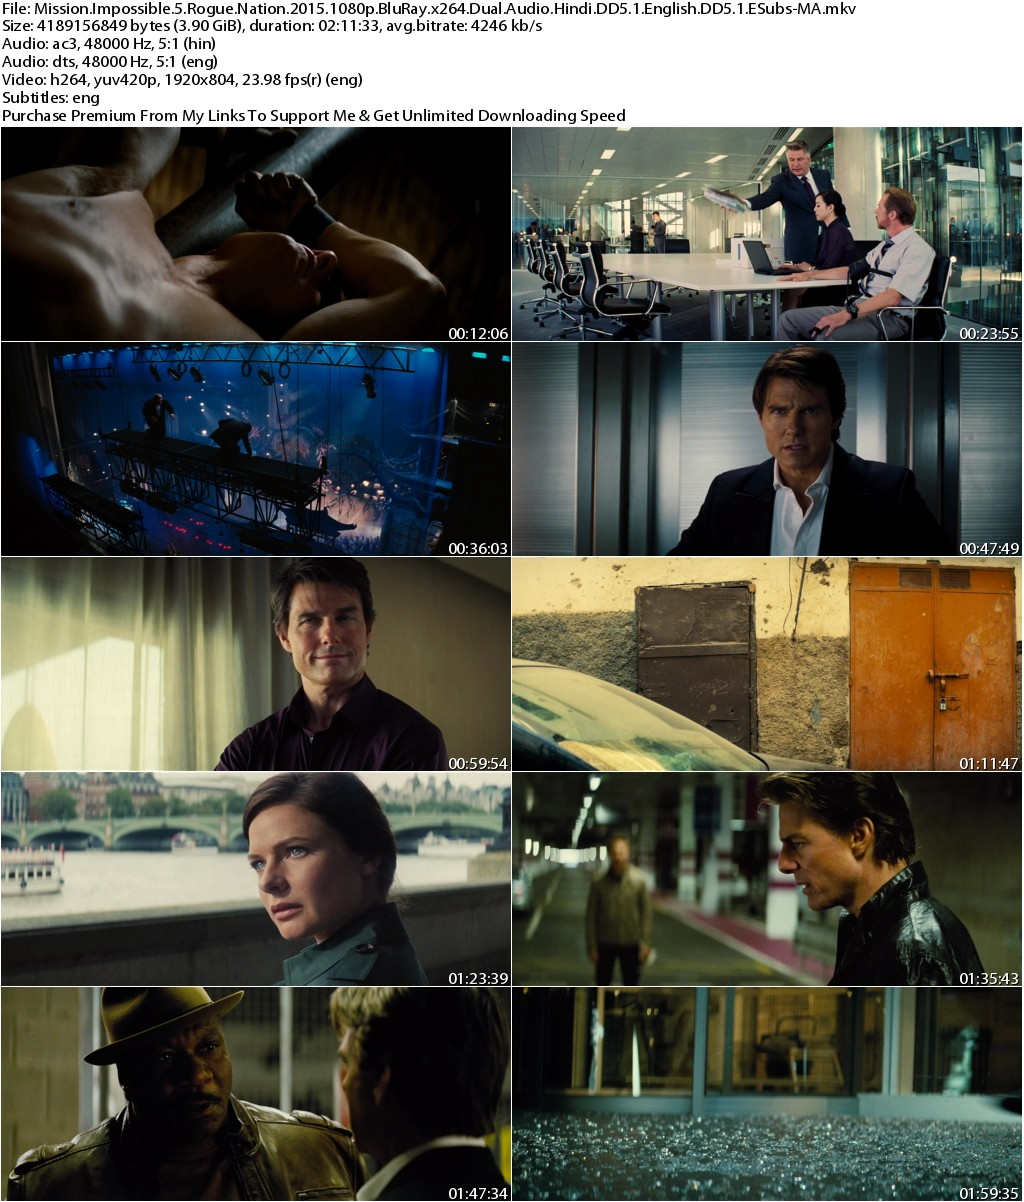 Mission Impossible Rogue Nation (2015) 1080p BluRay x264 Dual Audio Hindi DD5.1 English DD5.1 ESubs-MA